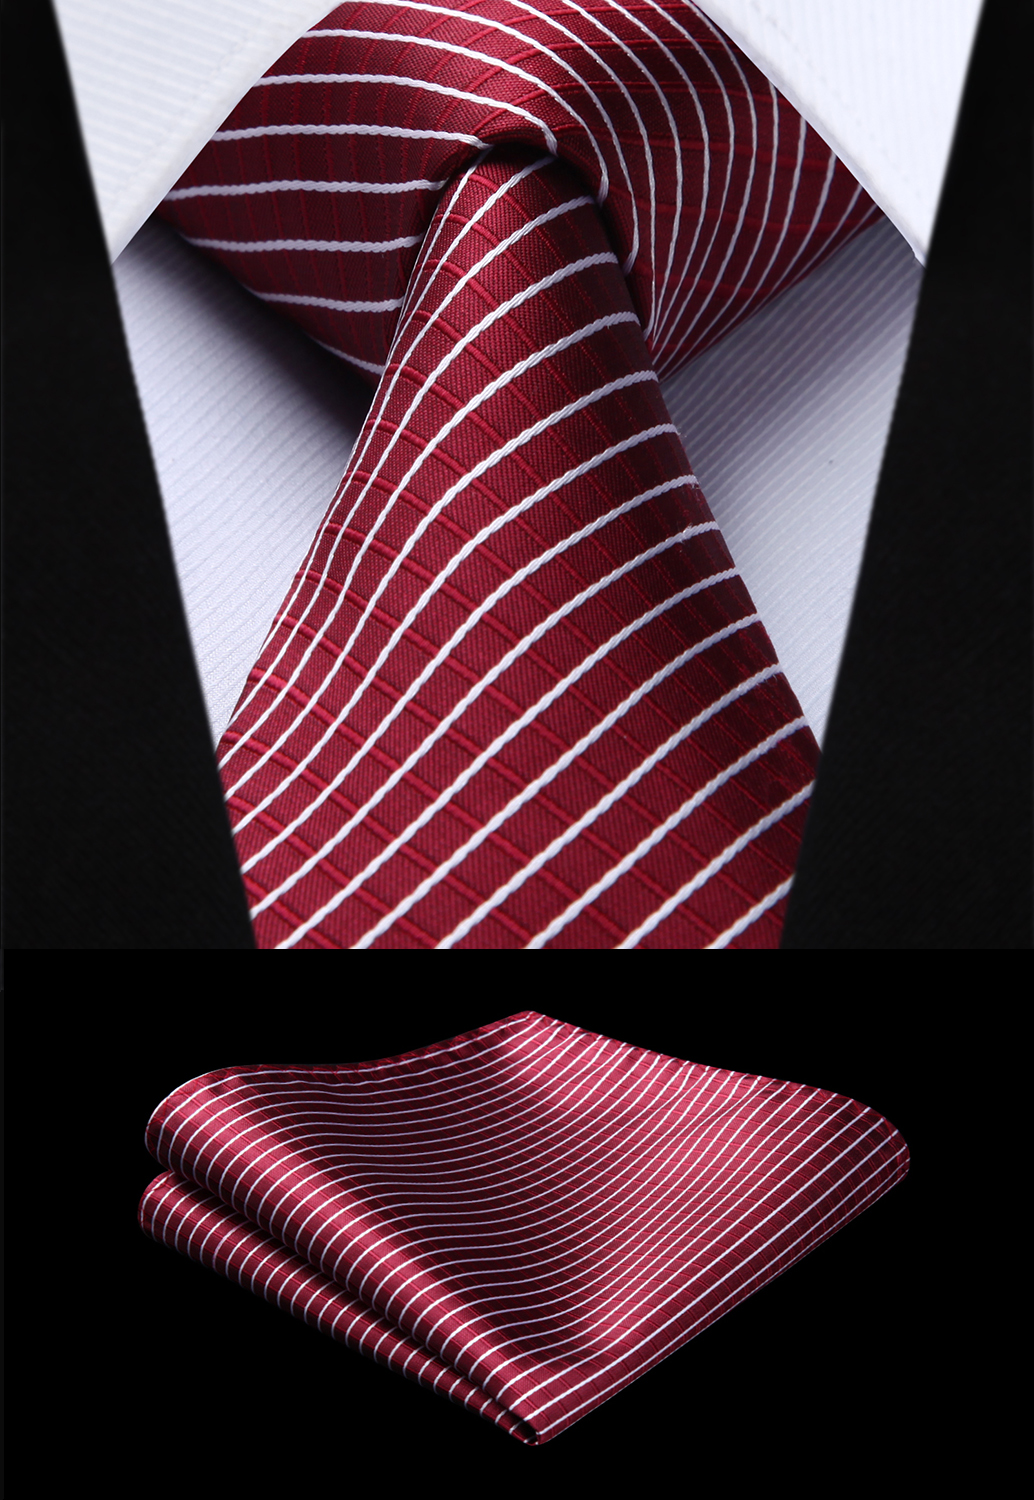 Party Wedding Classic Pocket Square Tie Woven Men Tie Fashion Burgundy Striped Necktie Handkerchief Set#TC718U8S